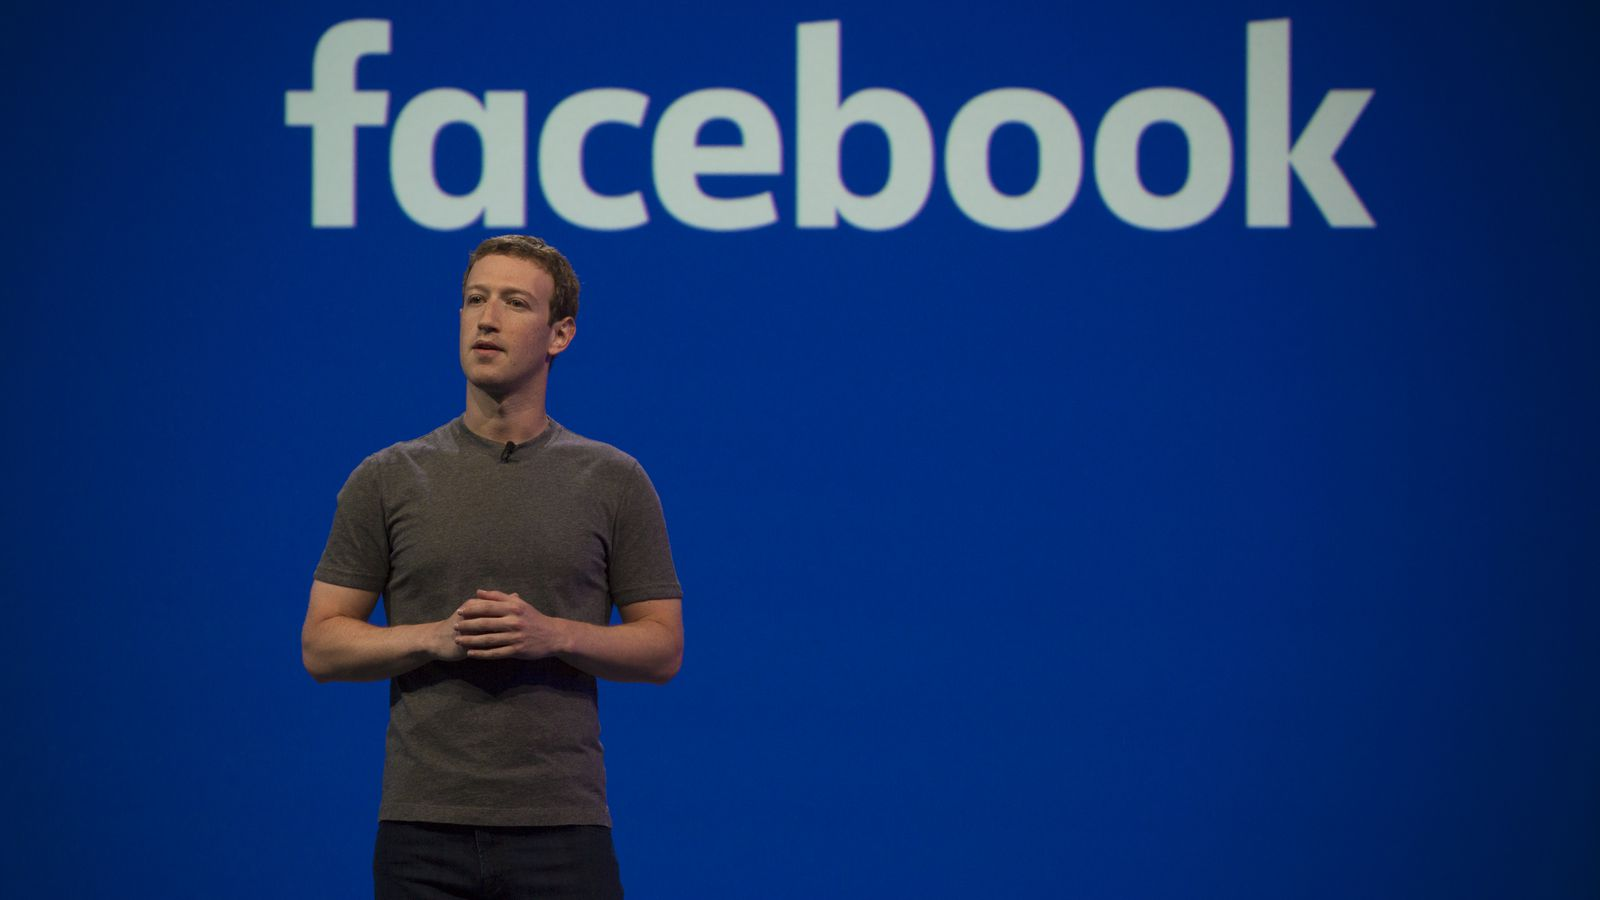 Facebook's News Feed Changes Might Make You Spend Less Time On It